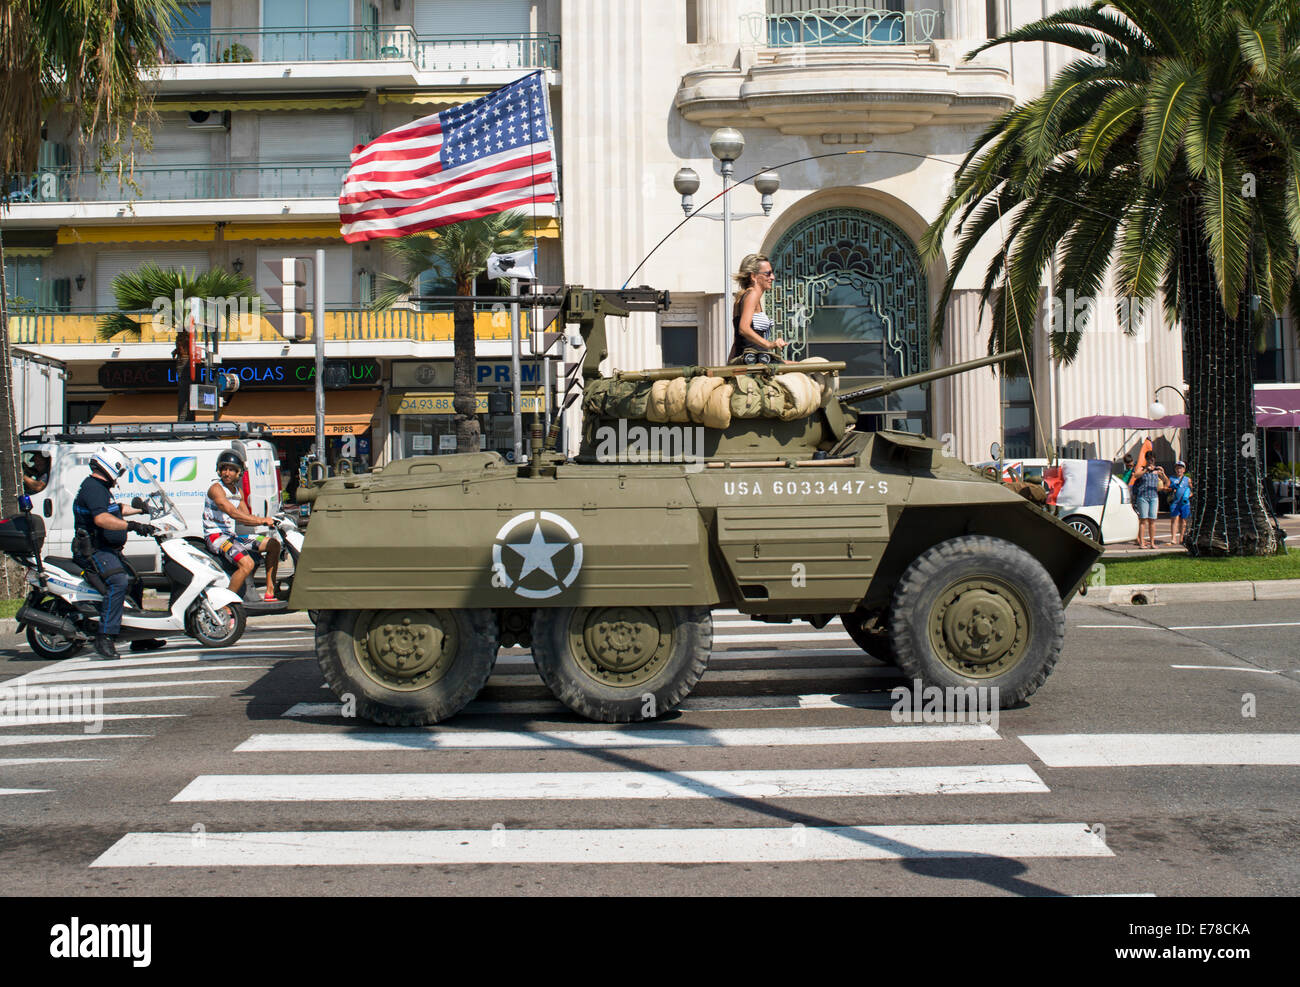 Military armored personnel carrier in a parade commemorating the liberation of Southern France during World War - Stock Image